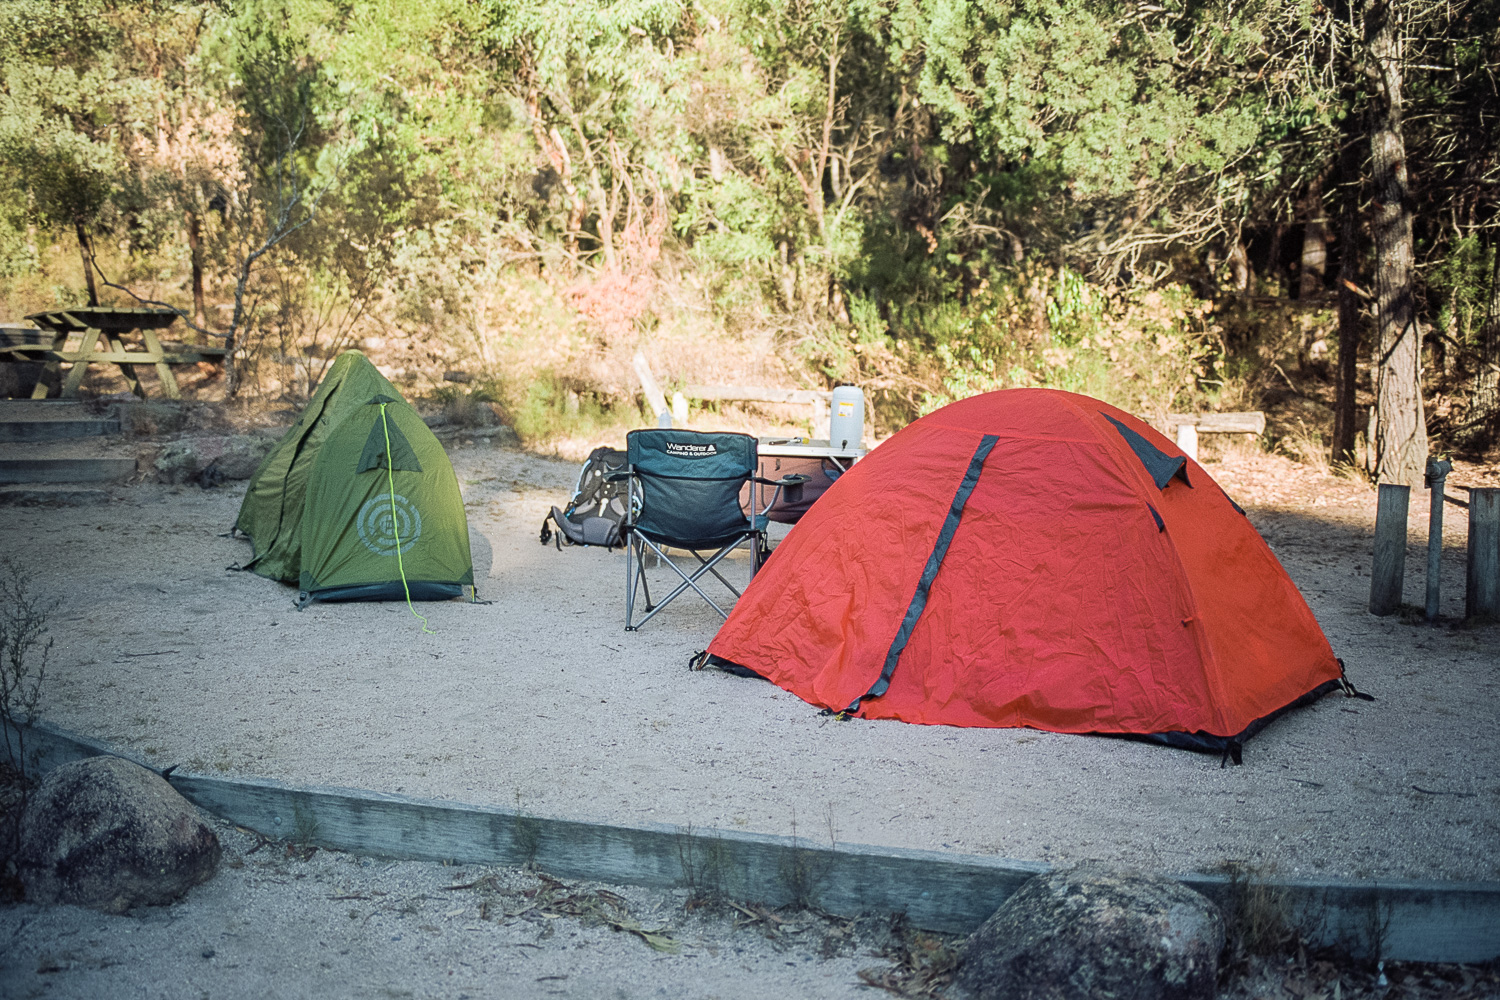 Camping is pretty great though.